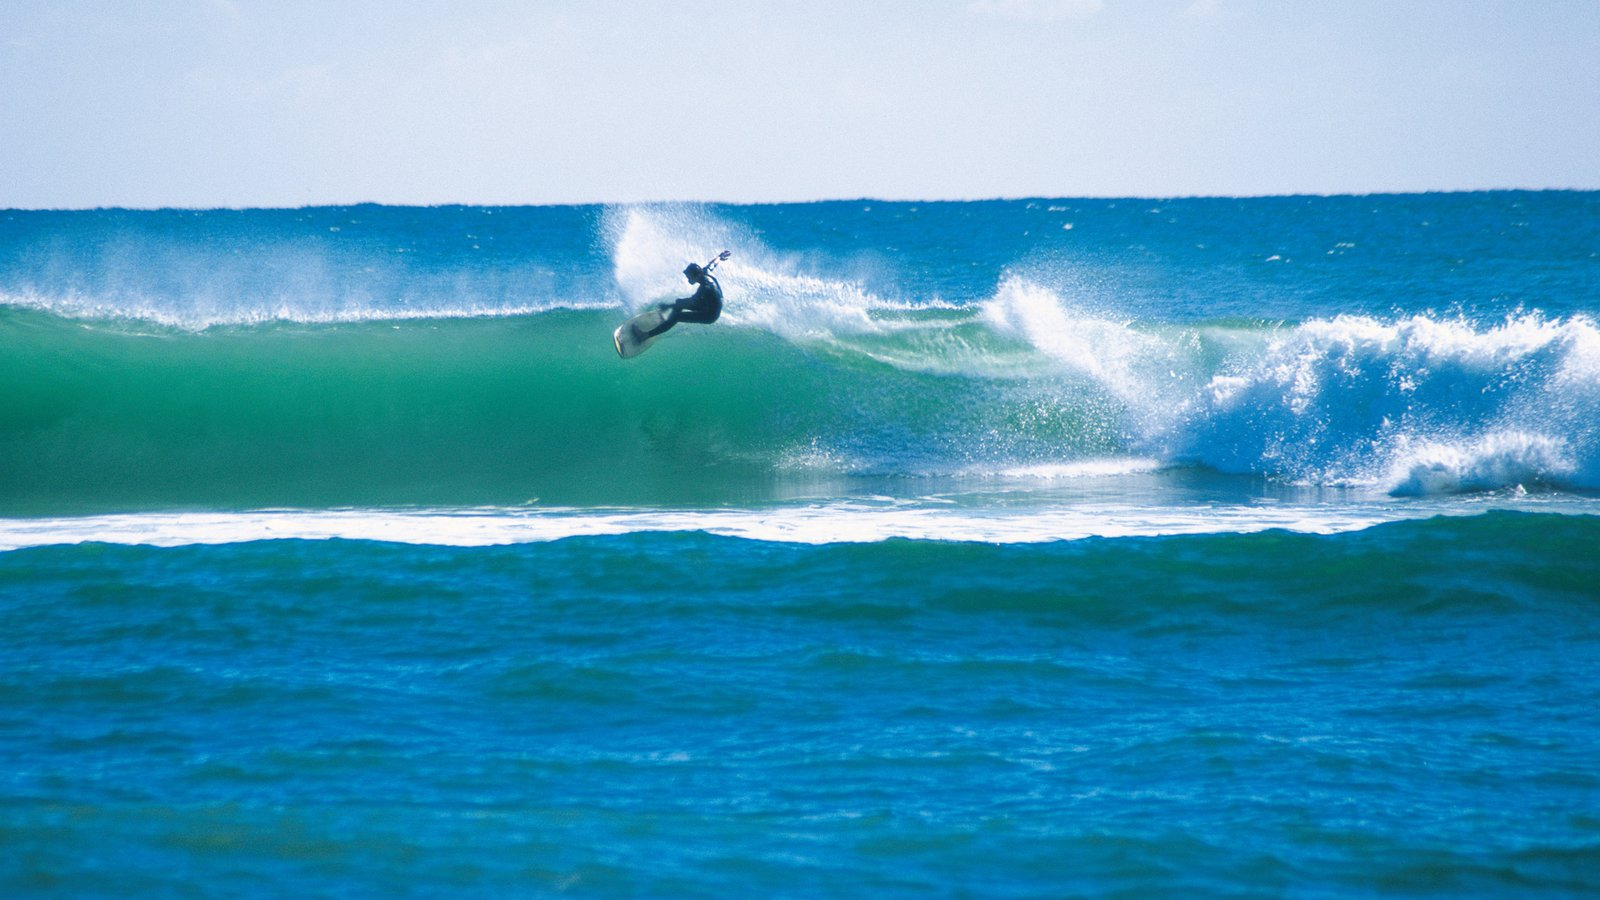 Gold Coast which includes surfing and surf as well as an individual male